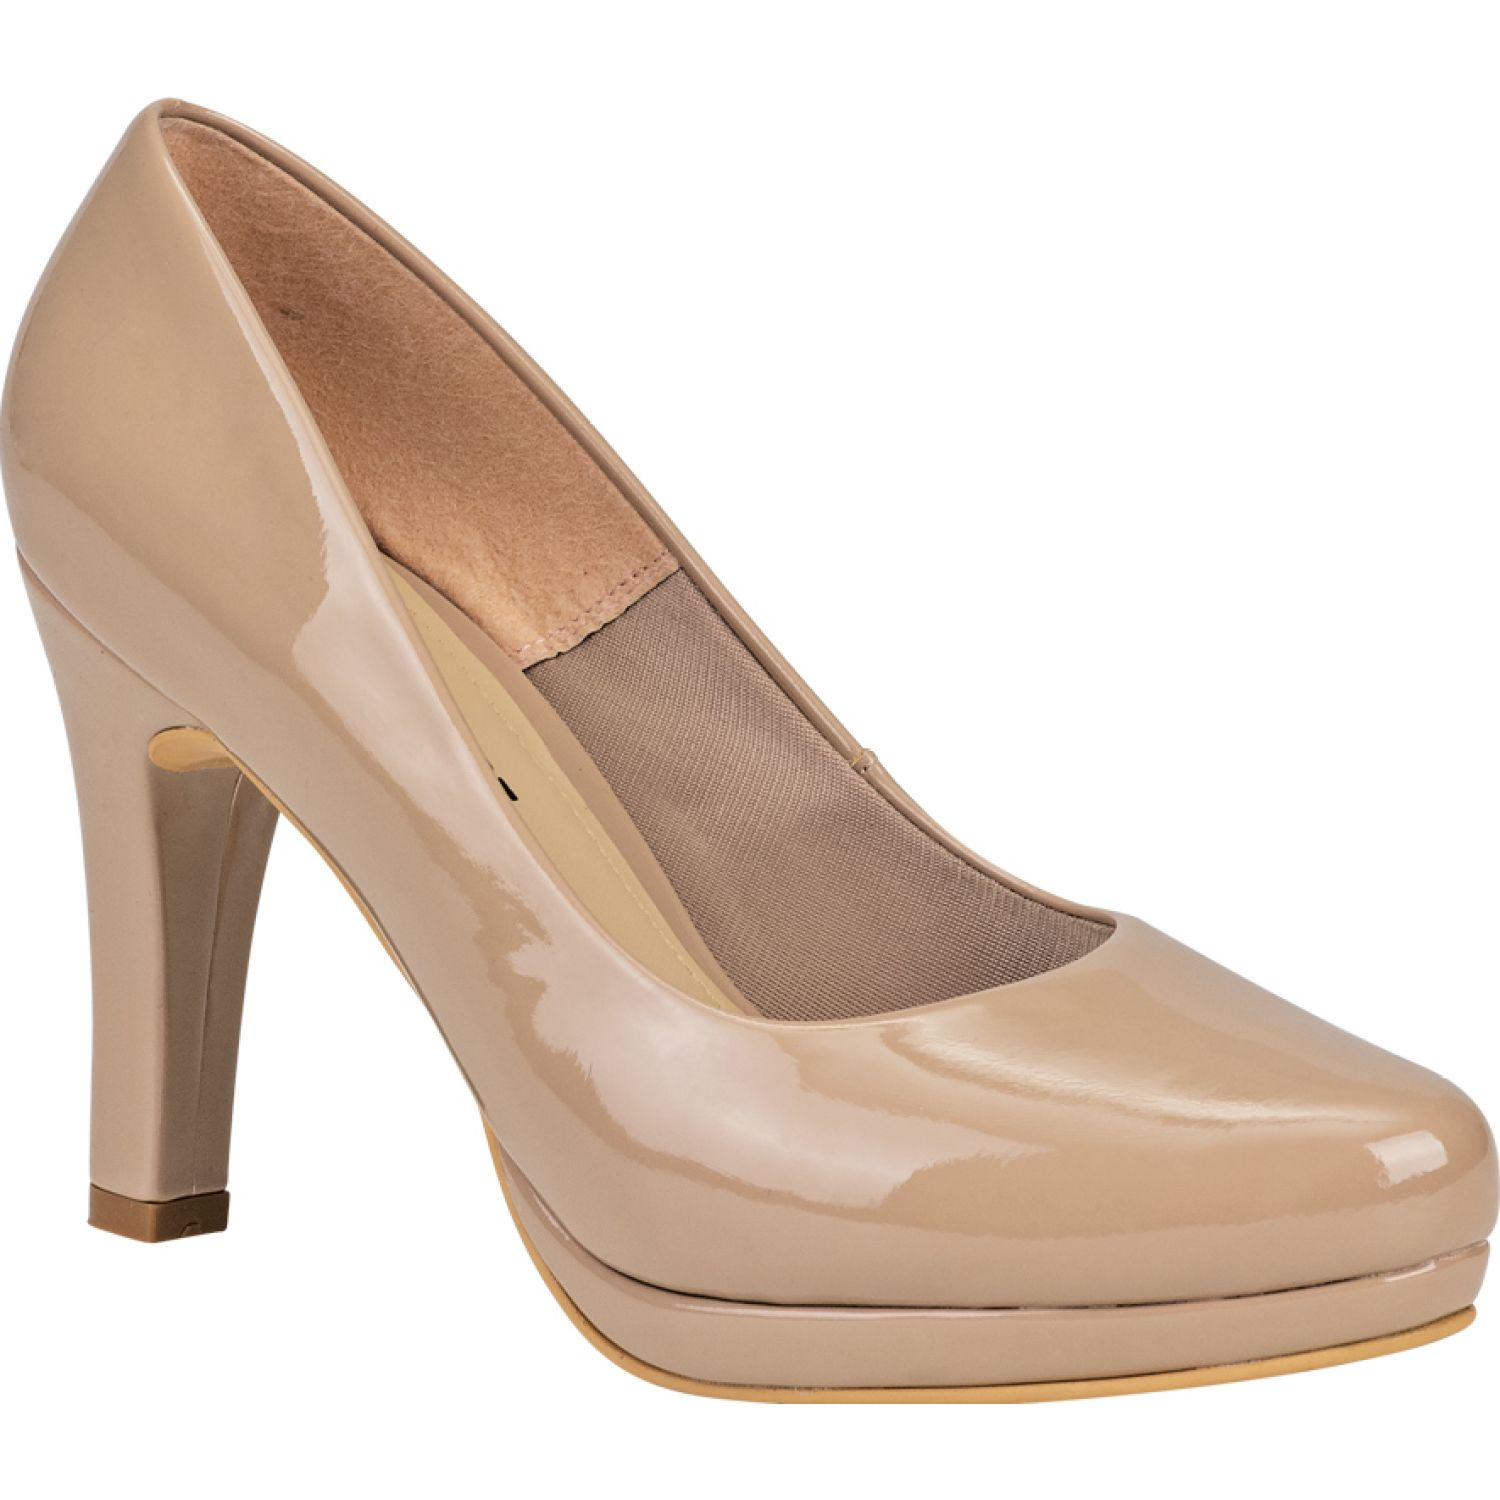 FOOTLOOSE Fs-05i20 NUDE Estiletos y pumps